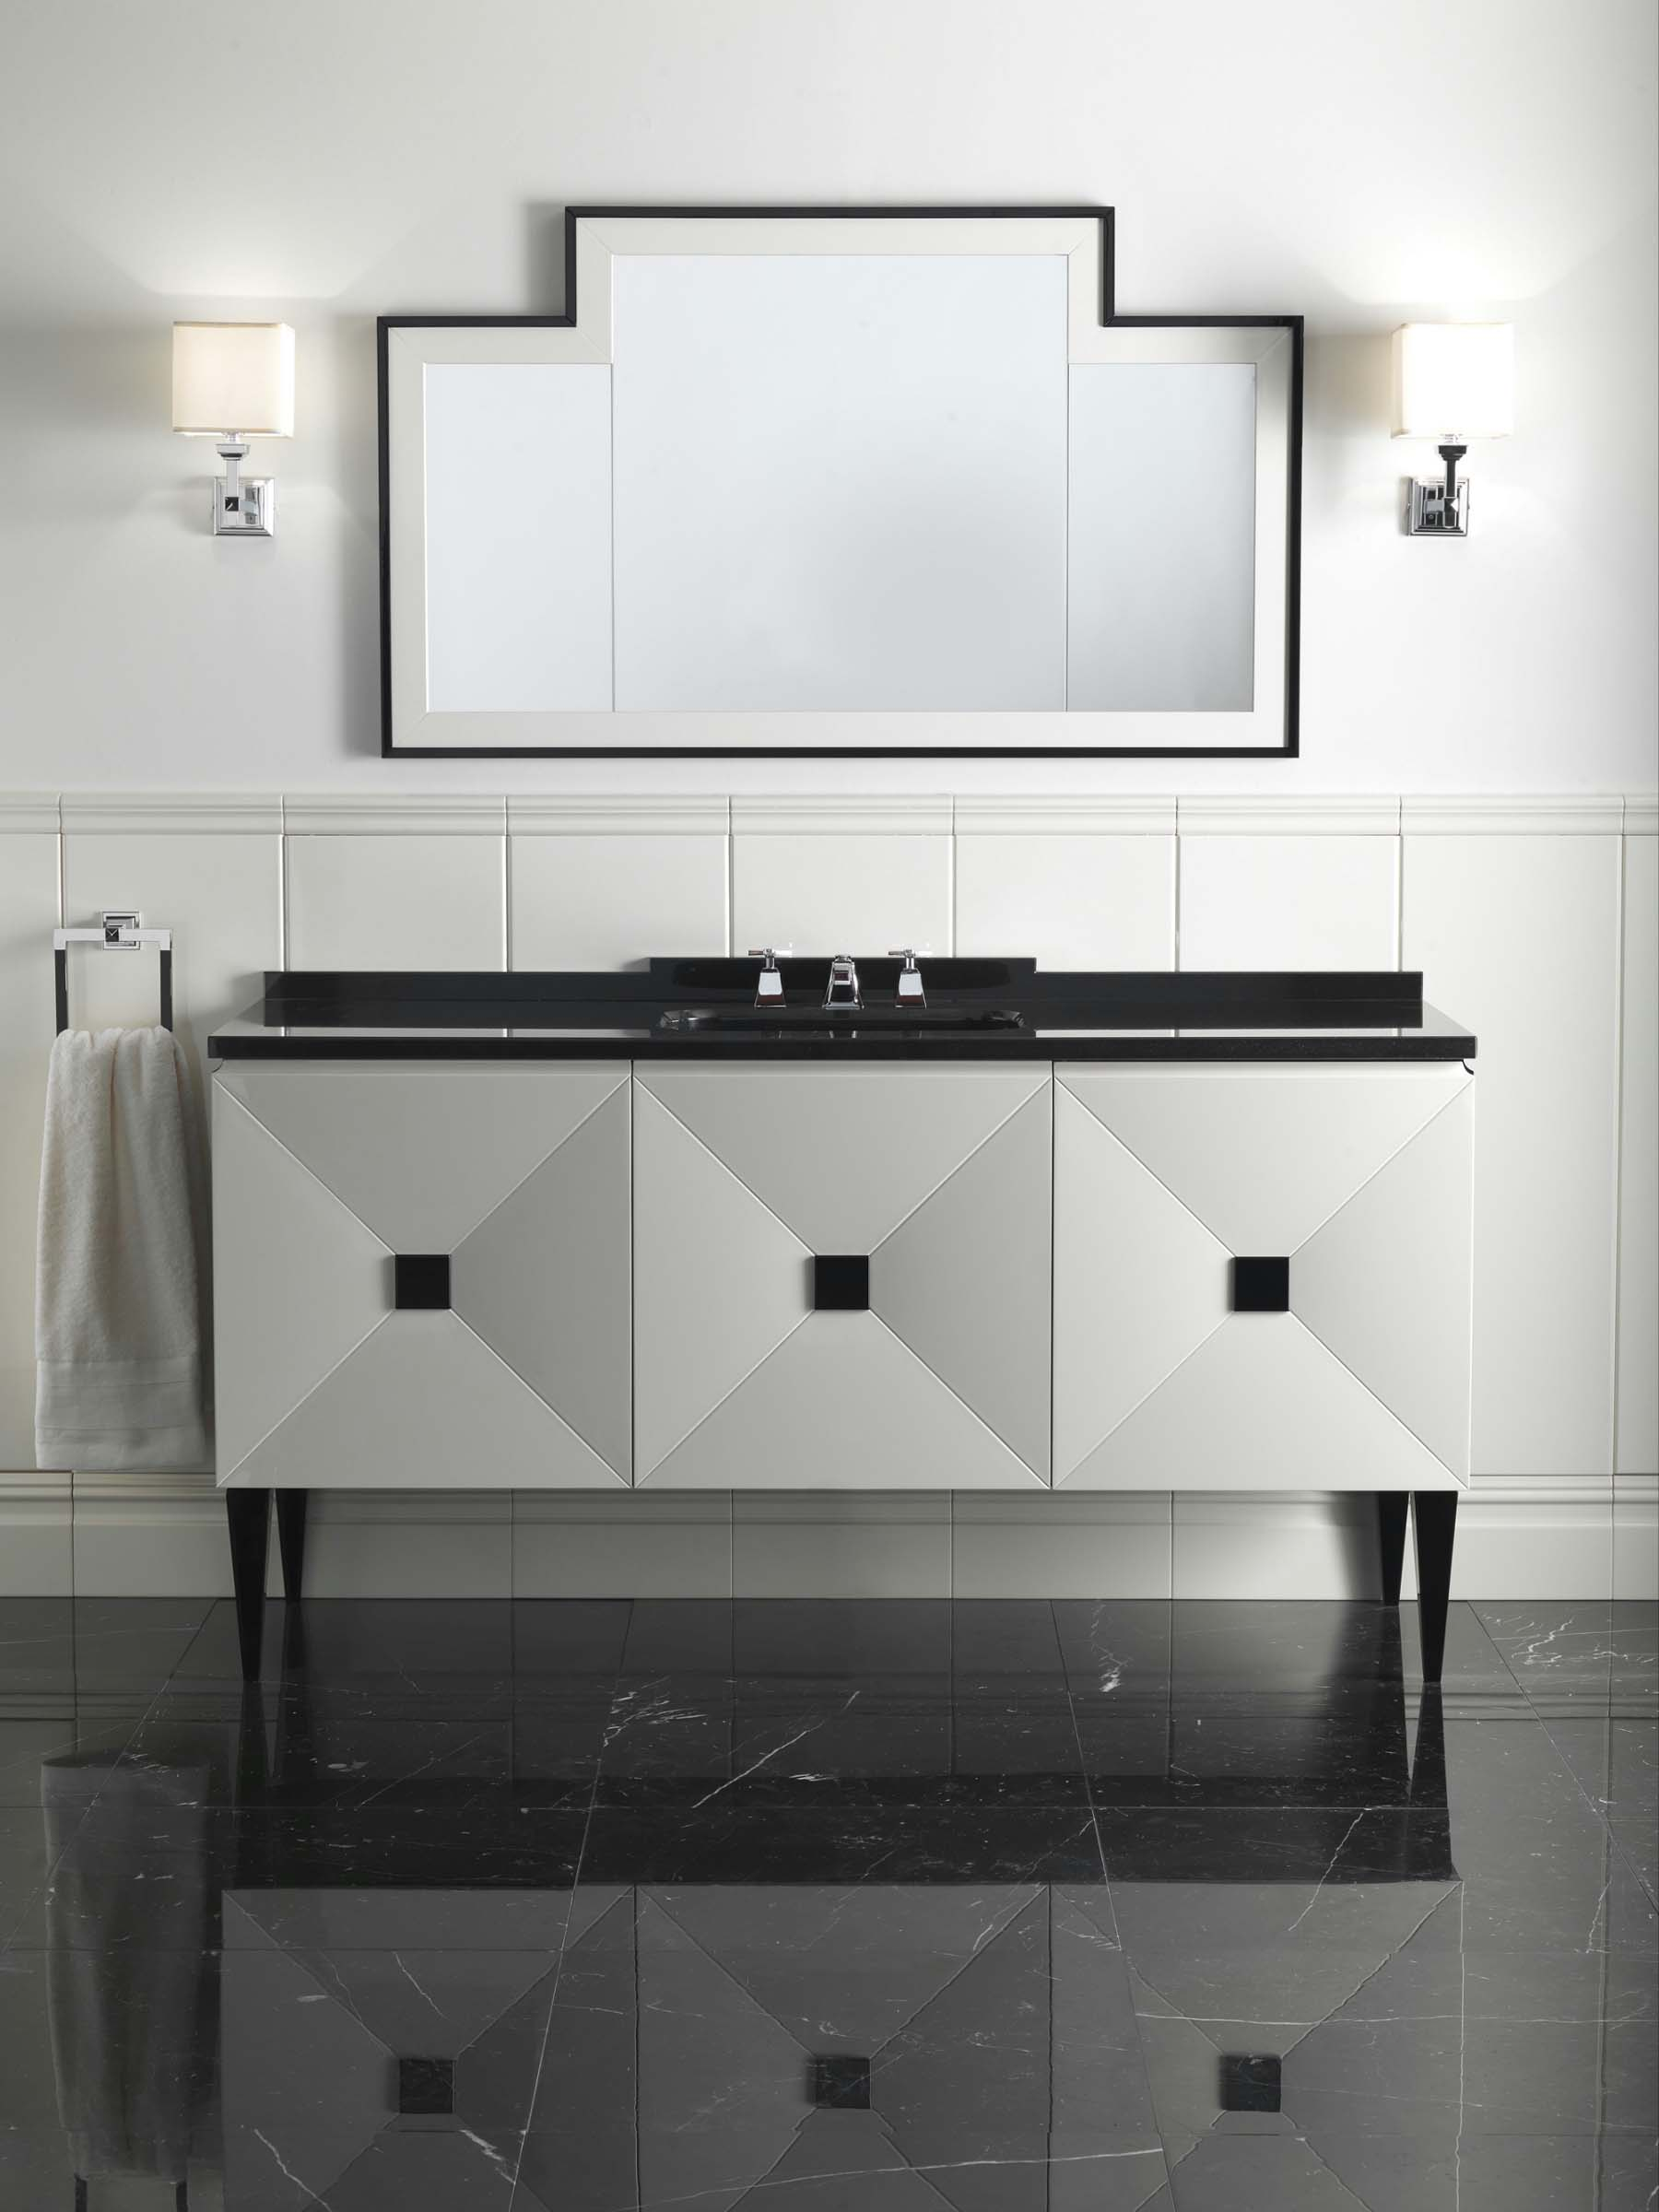 devon & devon black and white contemporary vanity with widespread polished chrome lav faucet - the ultimate guide to luxury plumbing by the delight of design